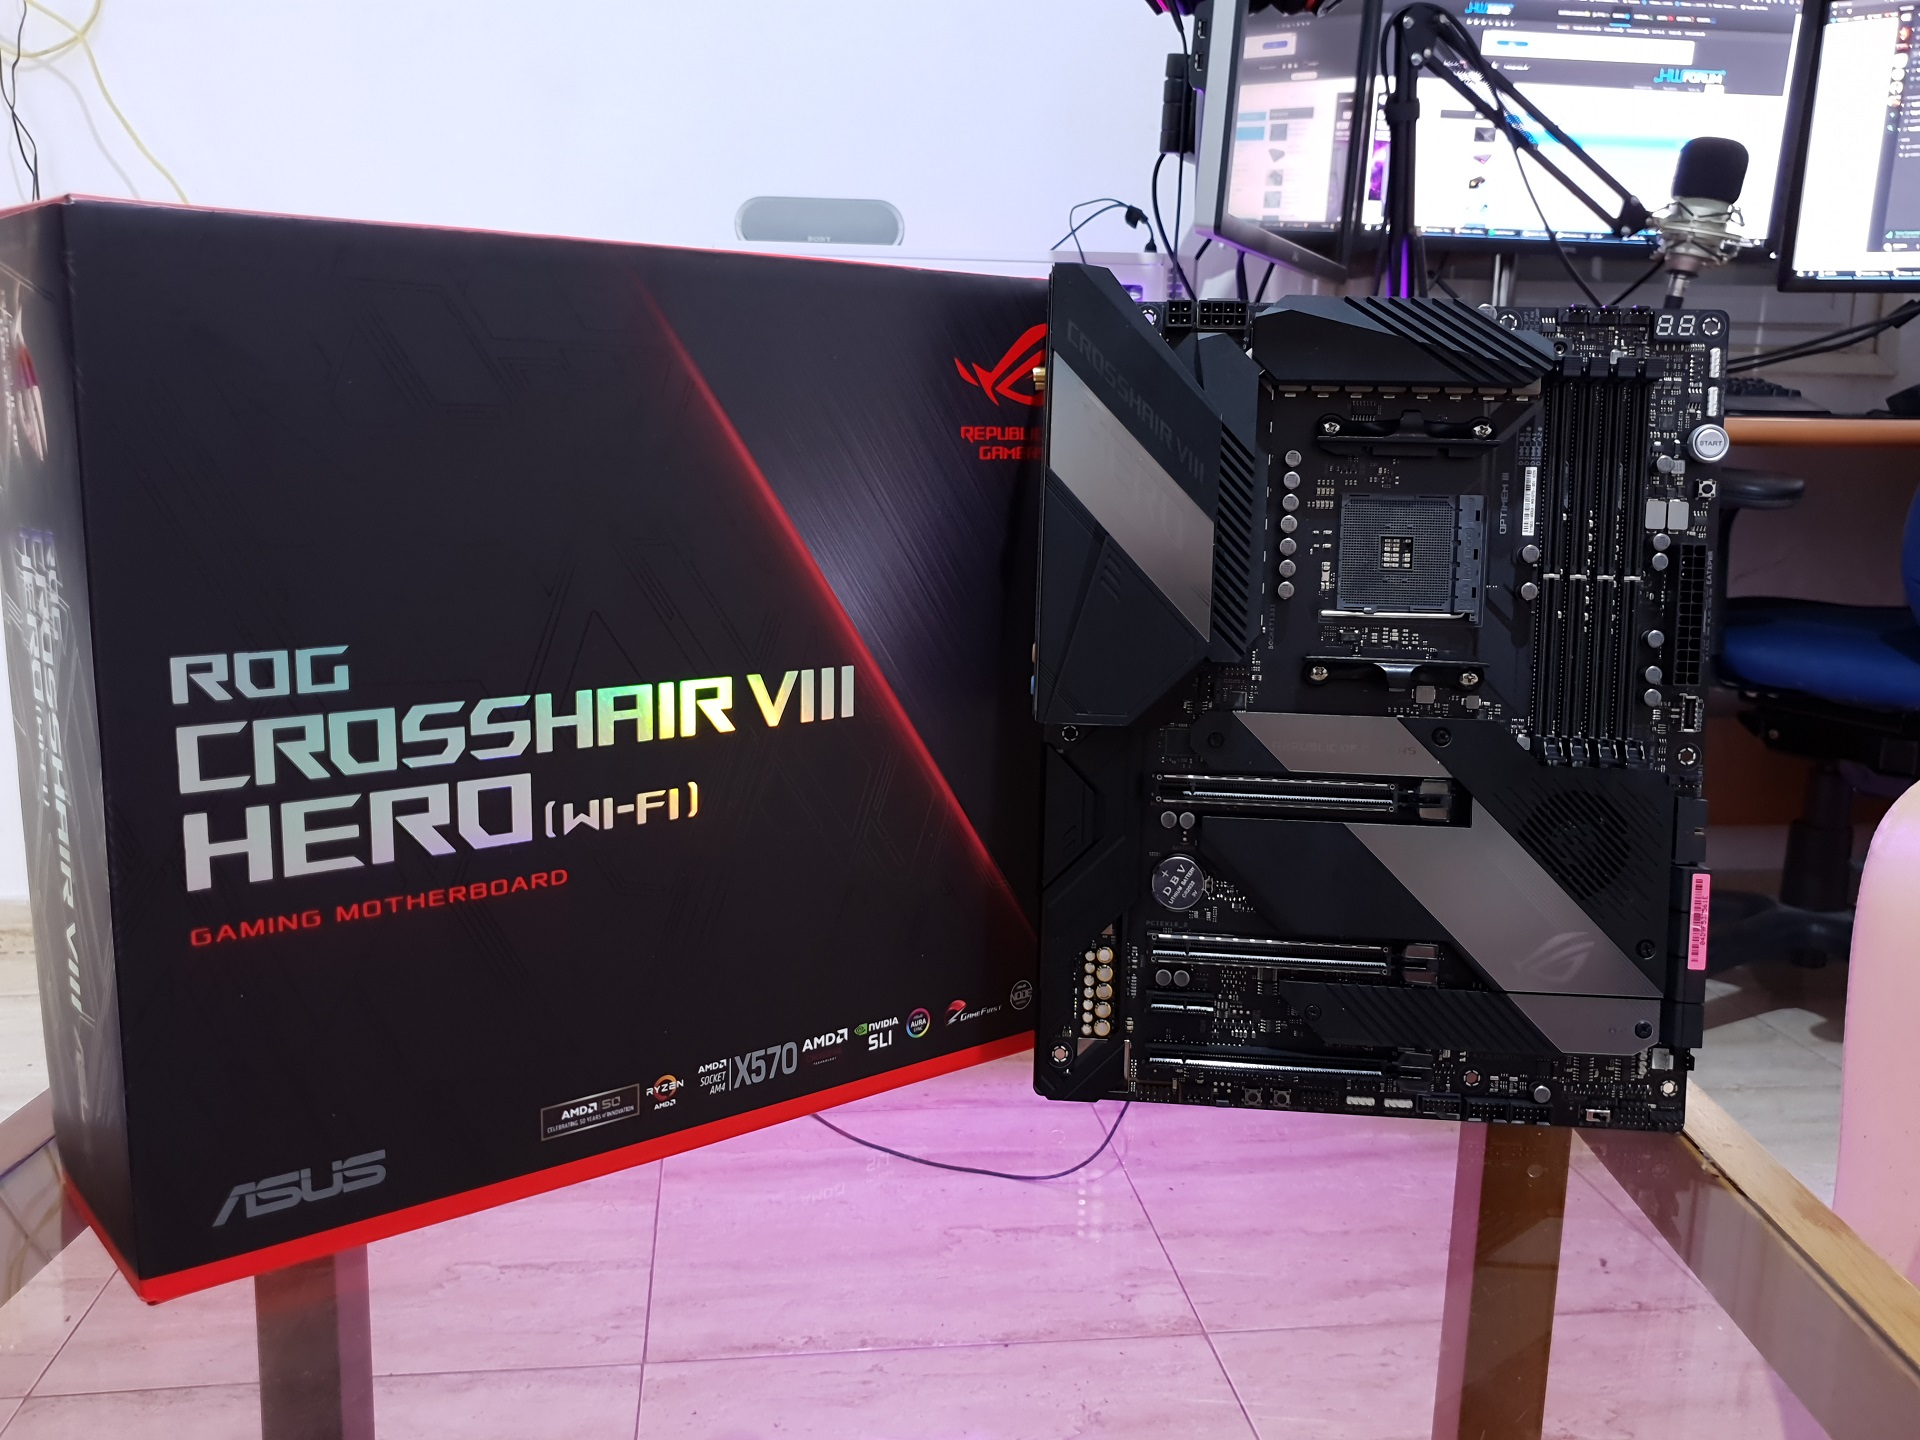 Photo of Ready for 16 Cores: Exploring Motherboard Asus Crosshair VIII Hero X570